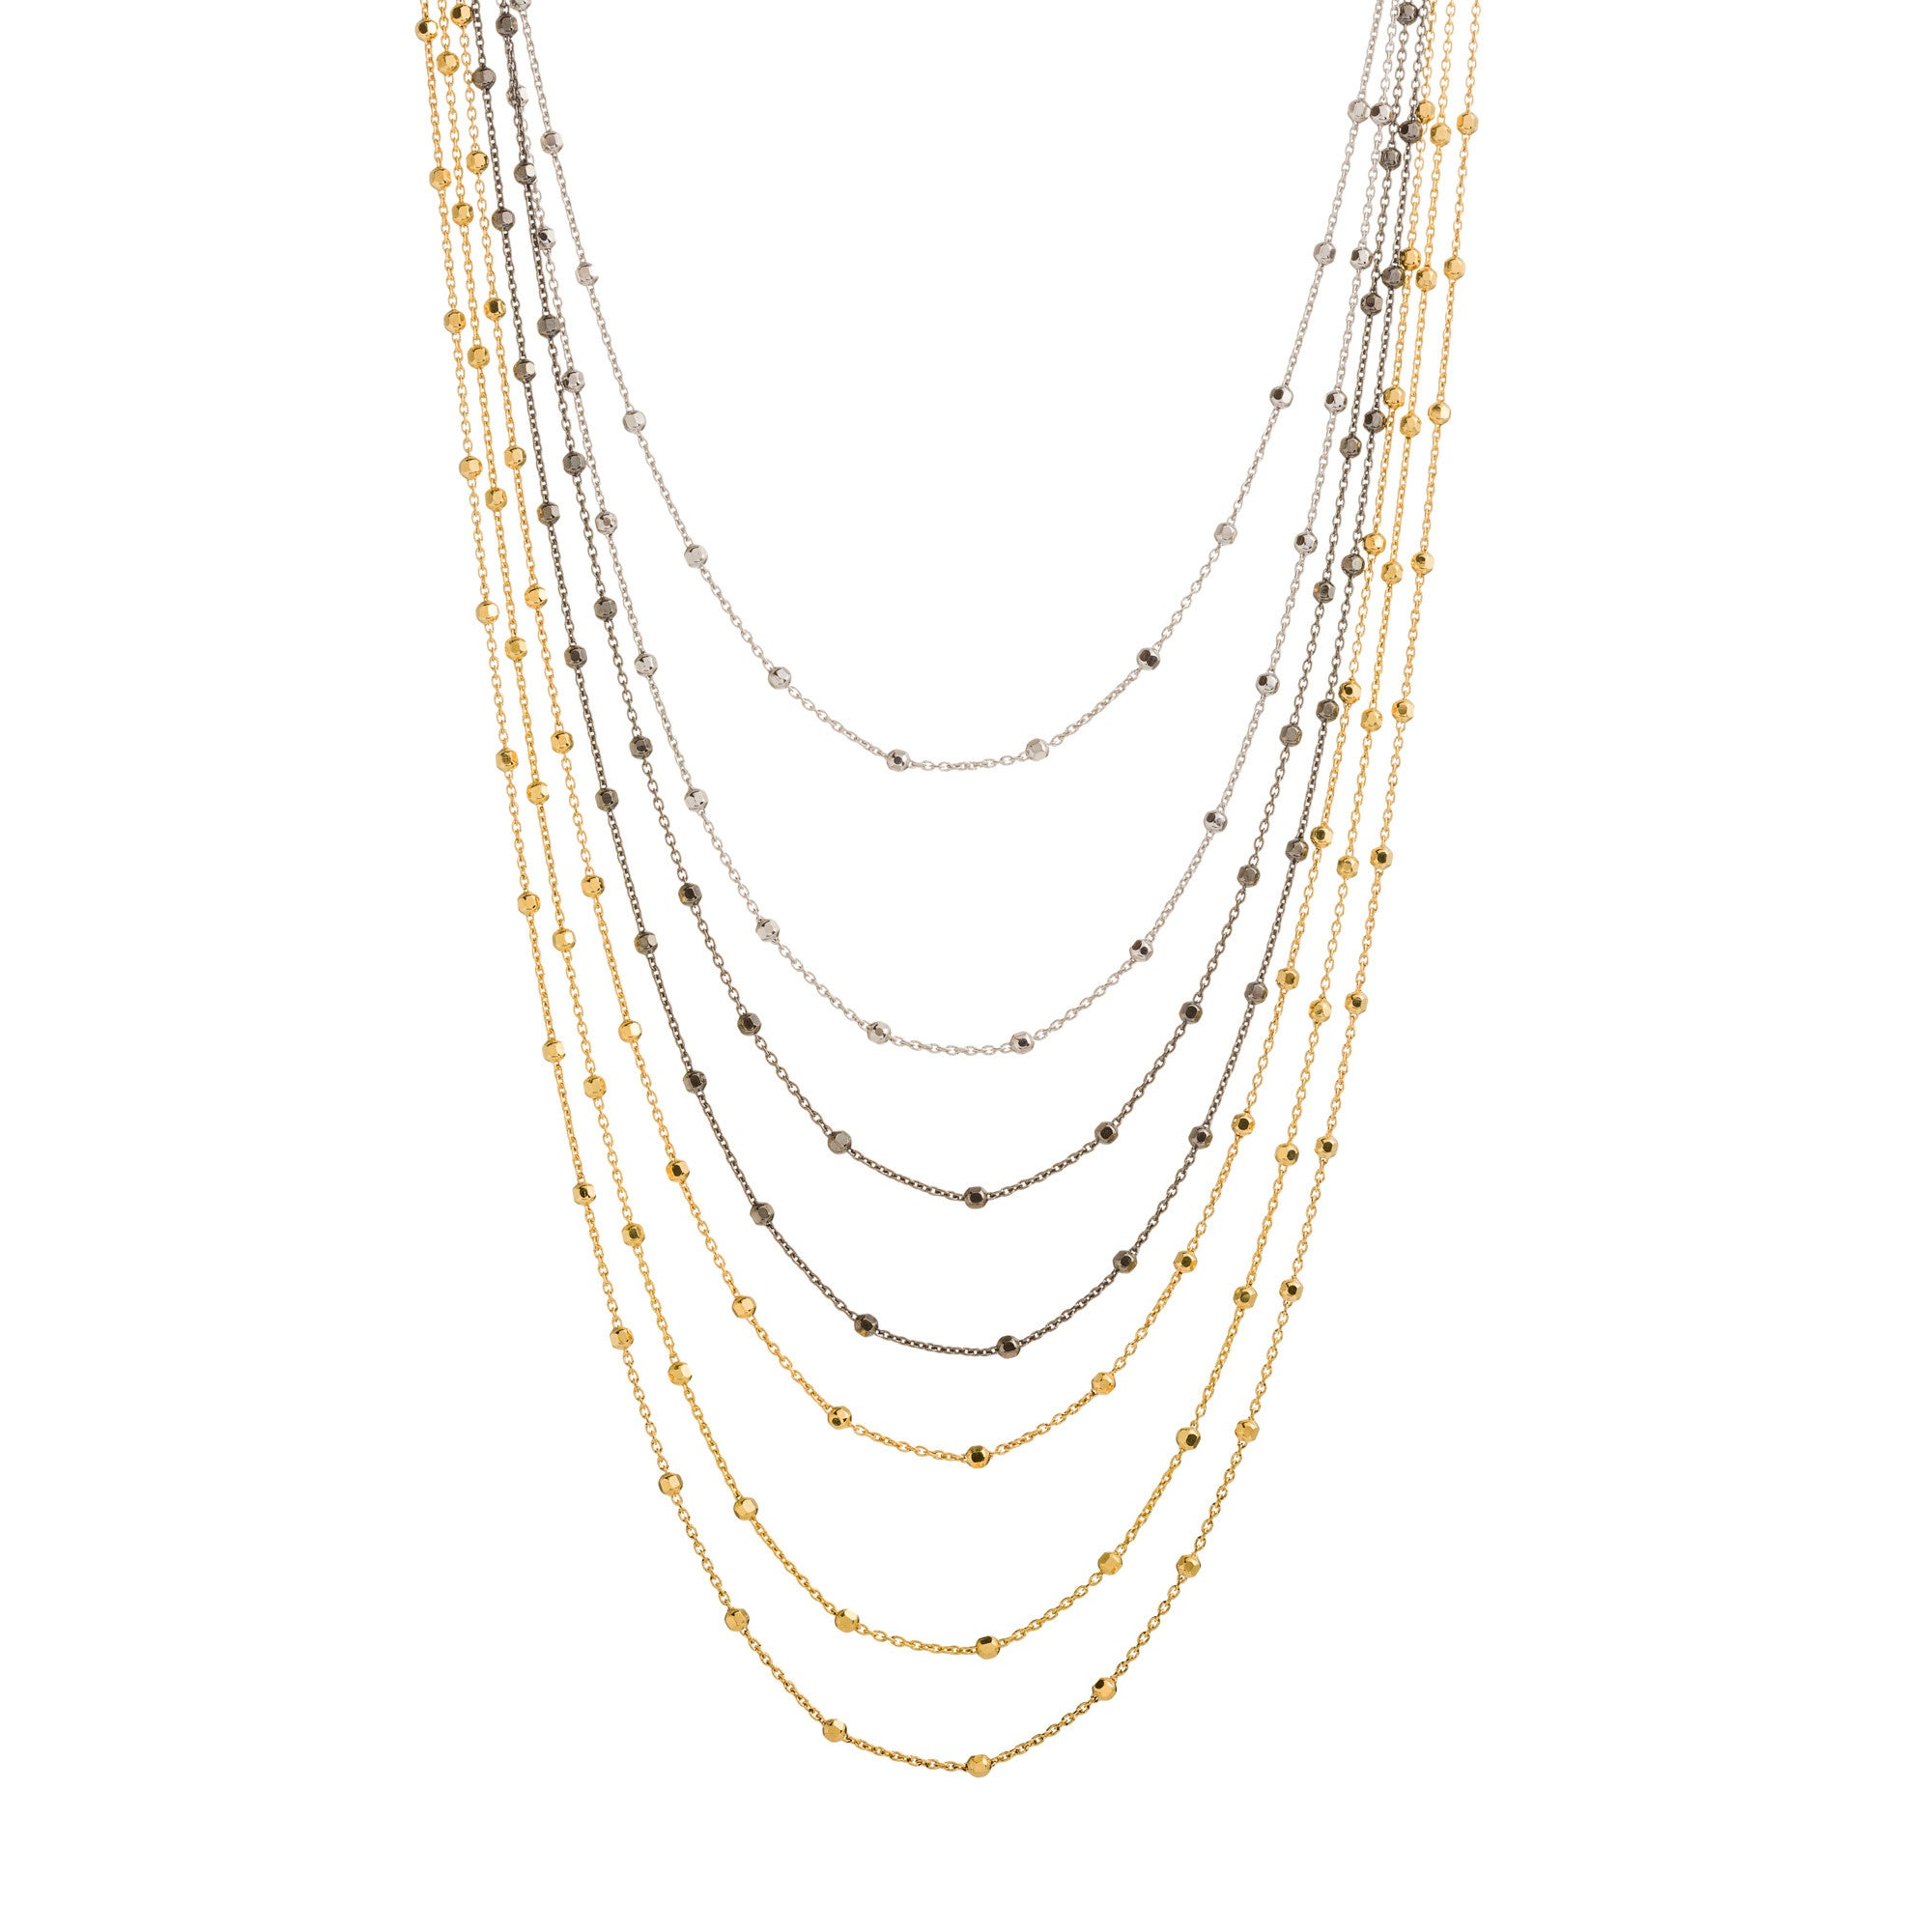 Tri-Color 7 Strand Diamond Cut Beaded Necklace